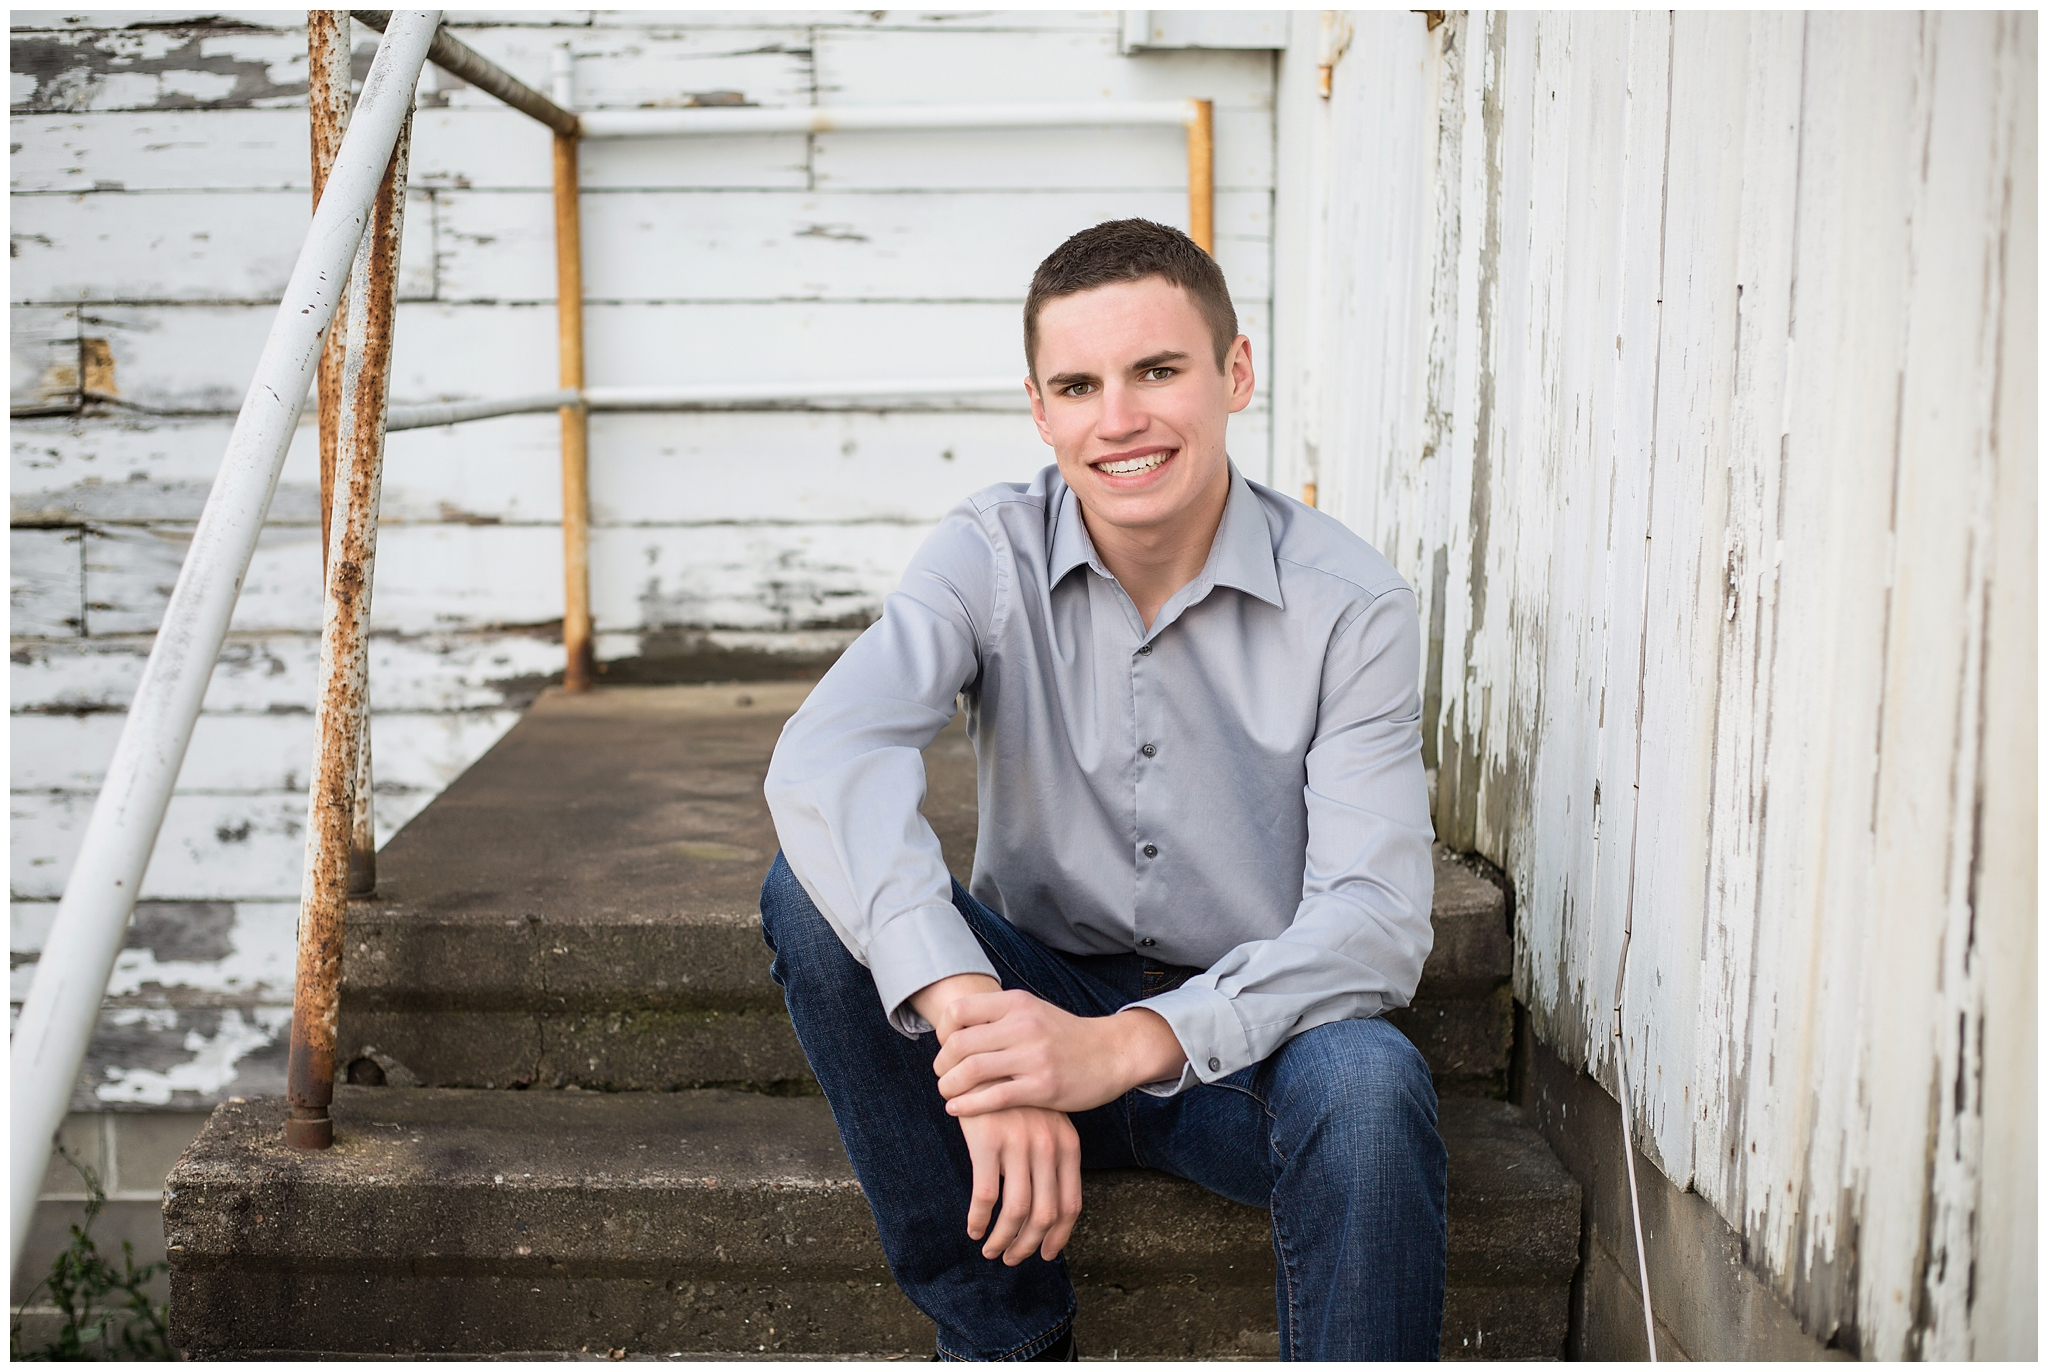 Tanner, Class of 2019